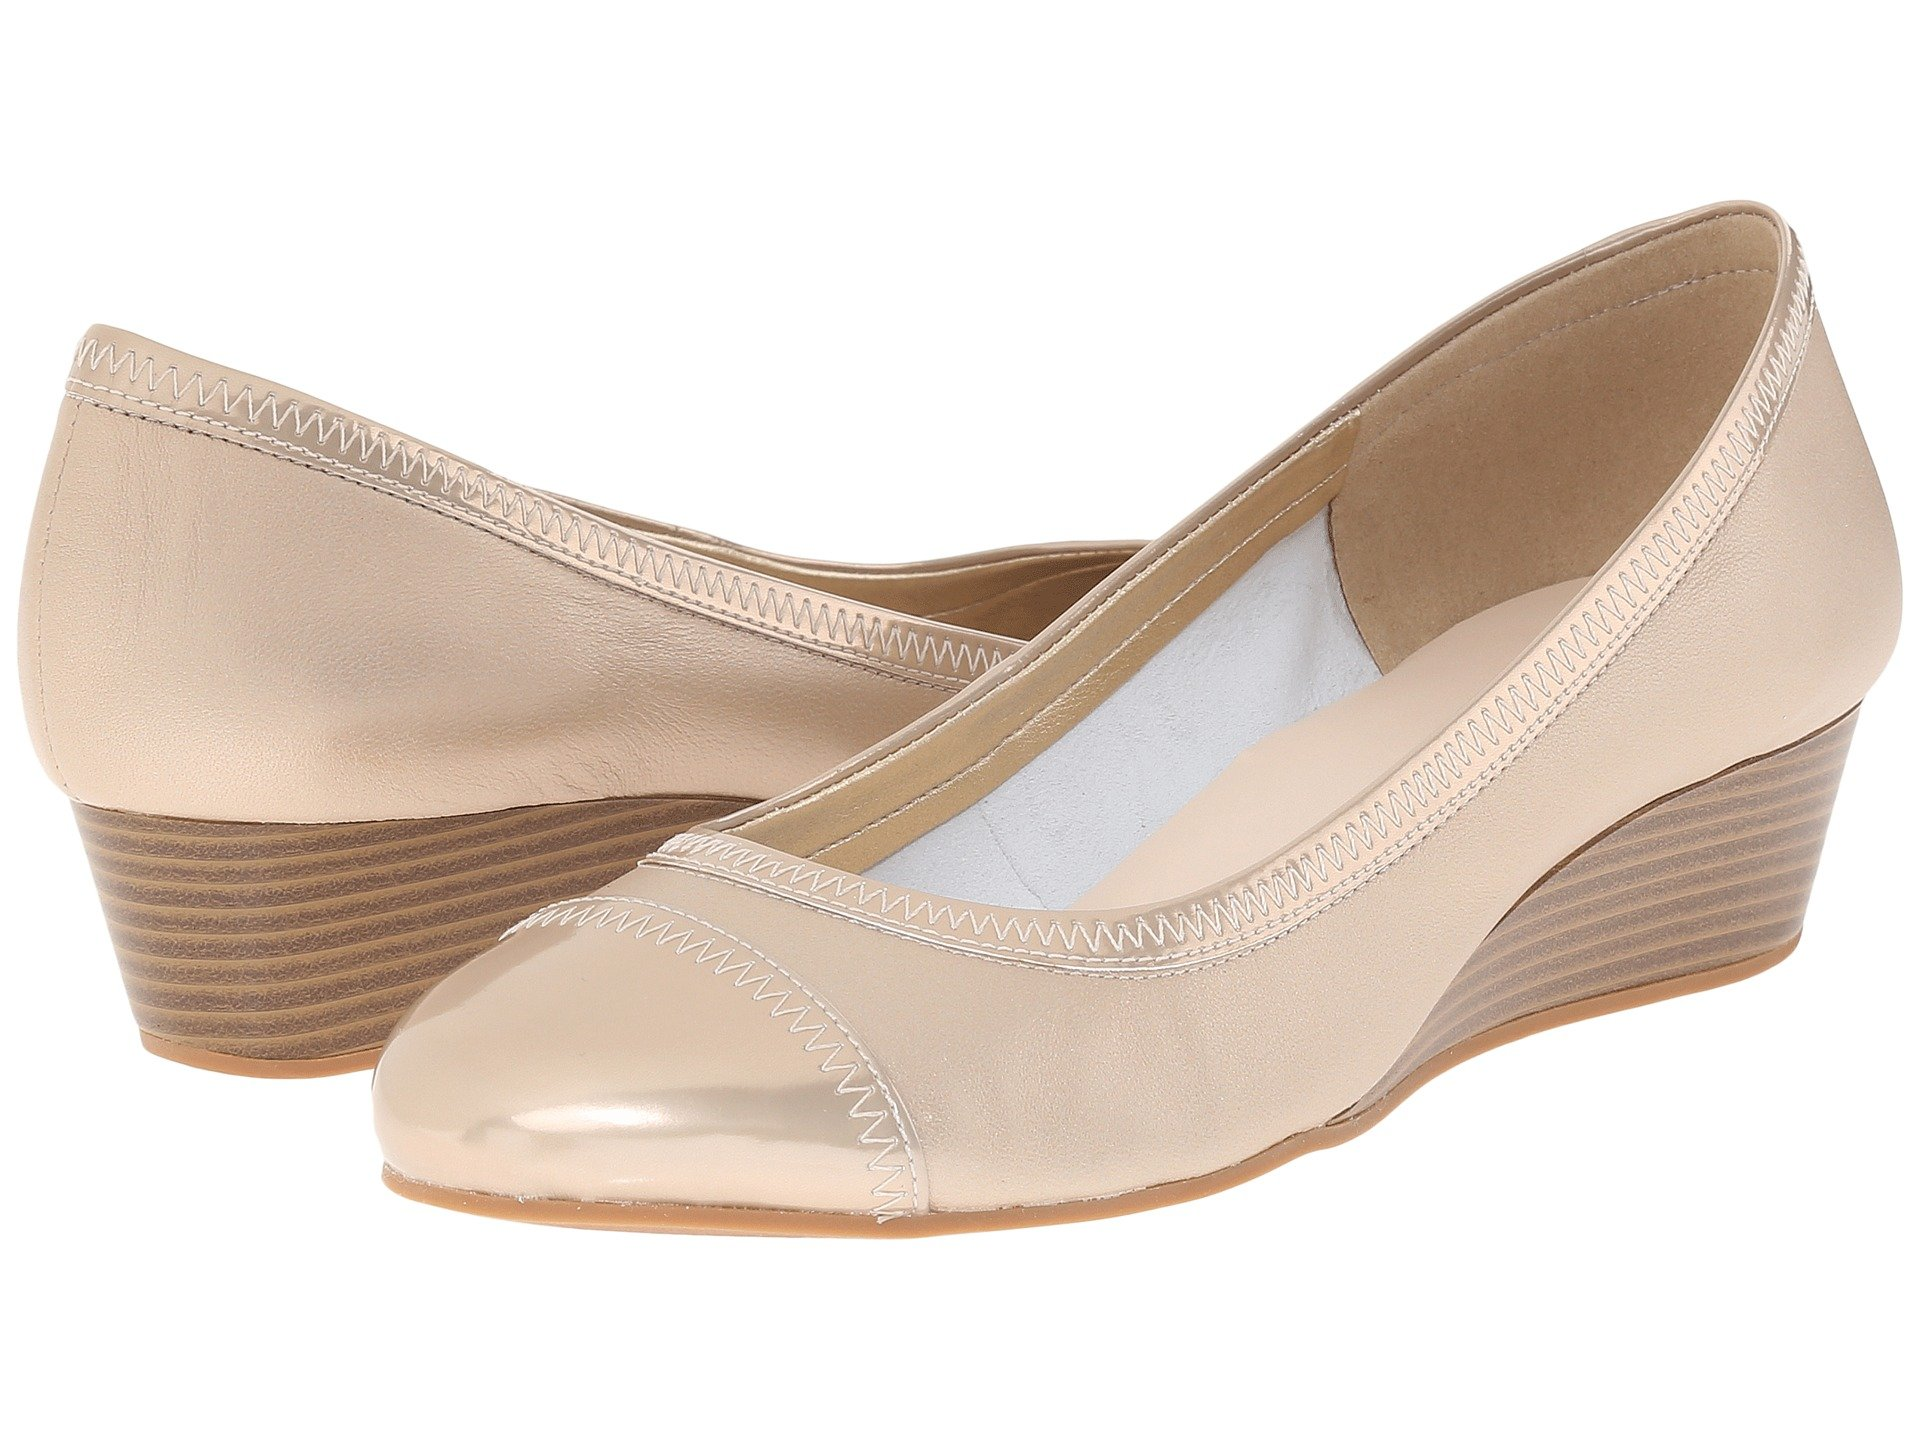 Elsie Cap Toe Wedge II